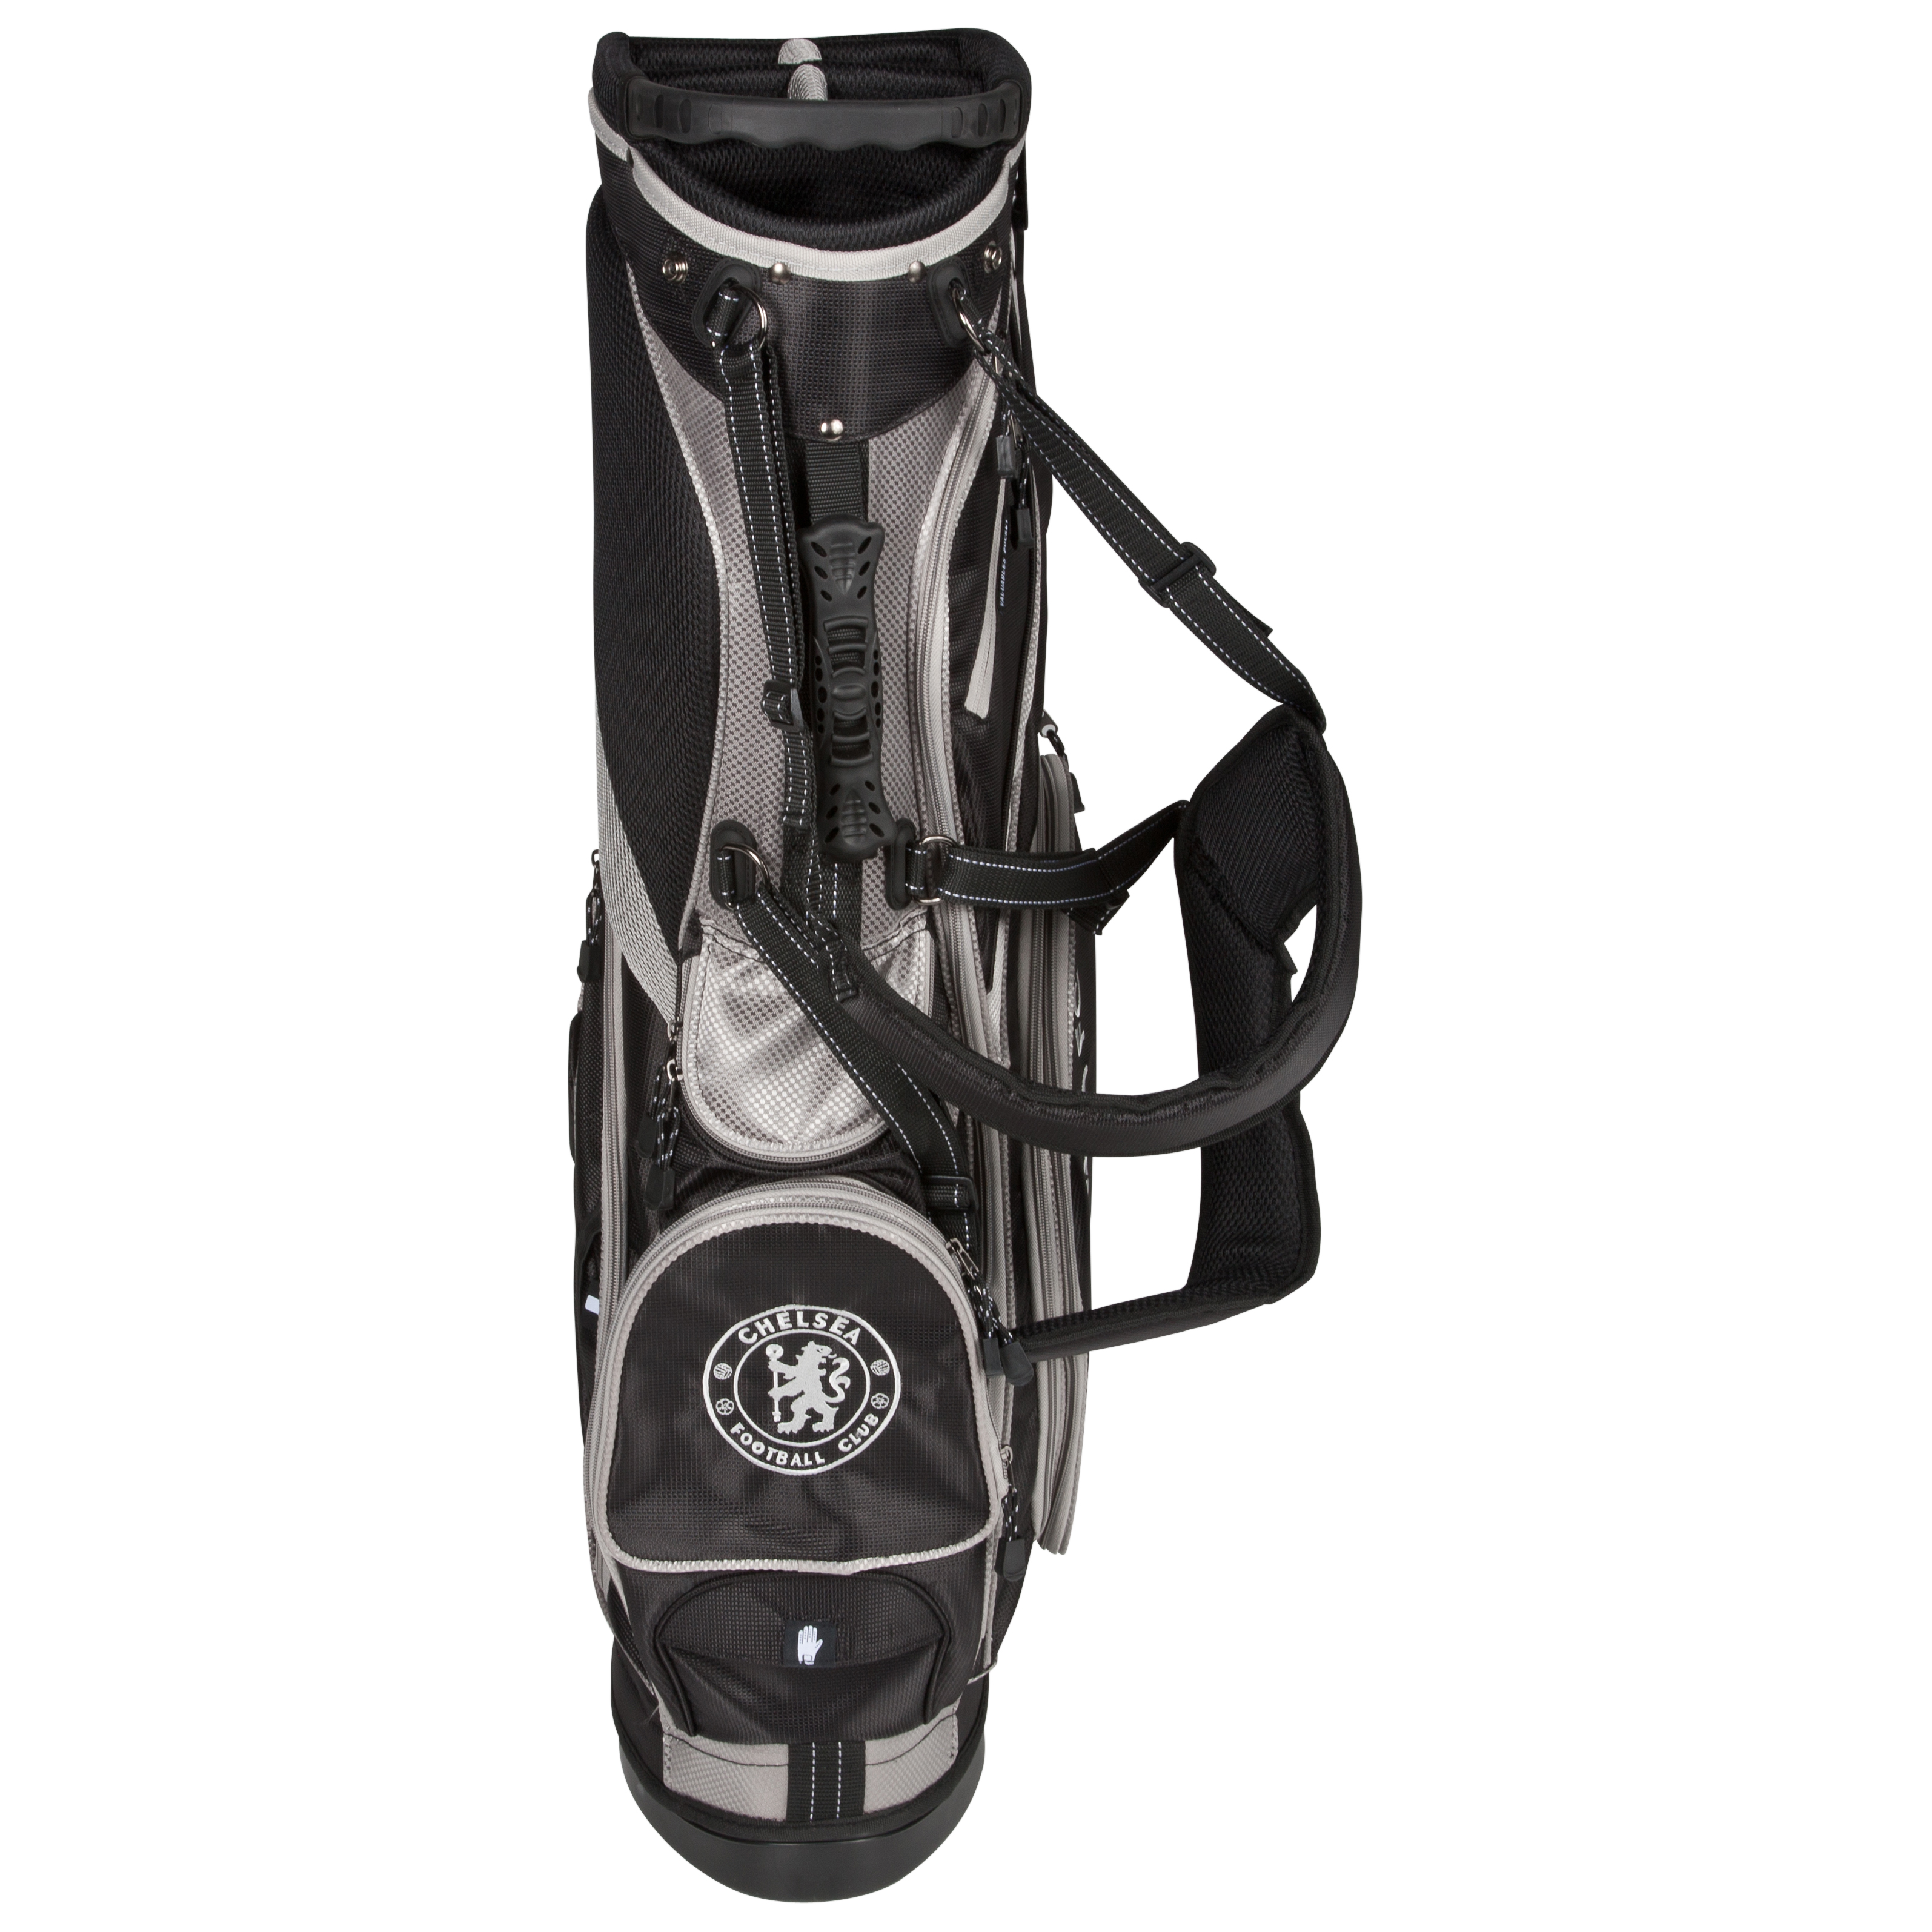 Chelsea Golf Bag - Black/Silver